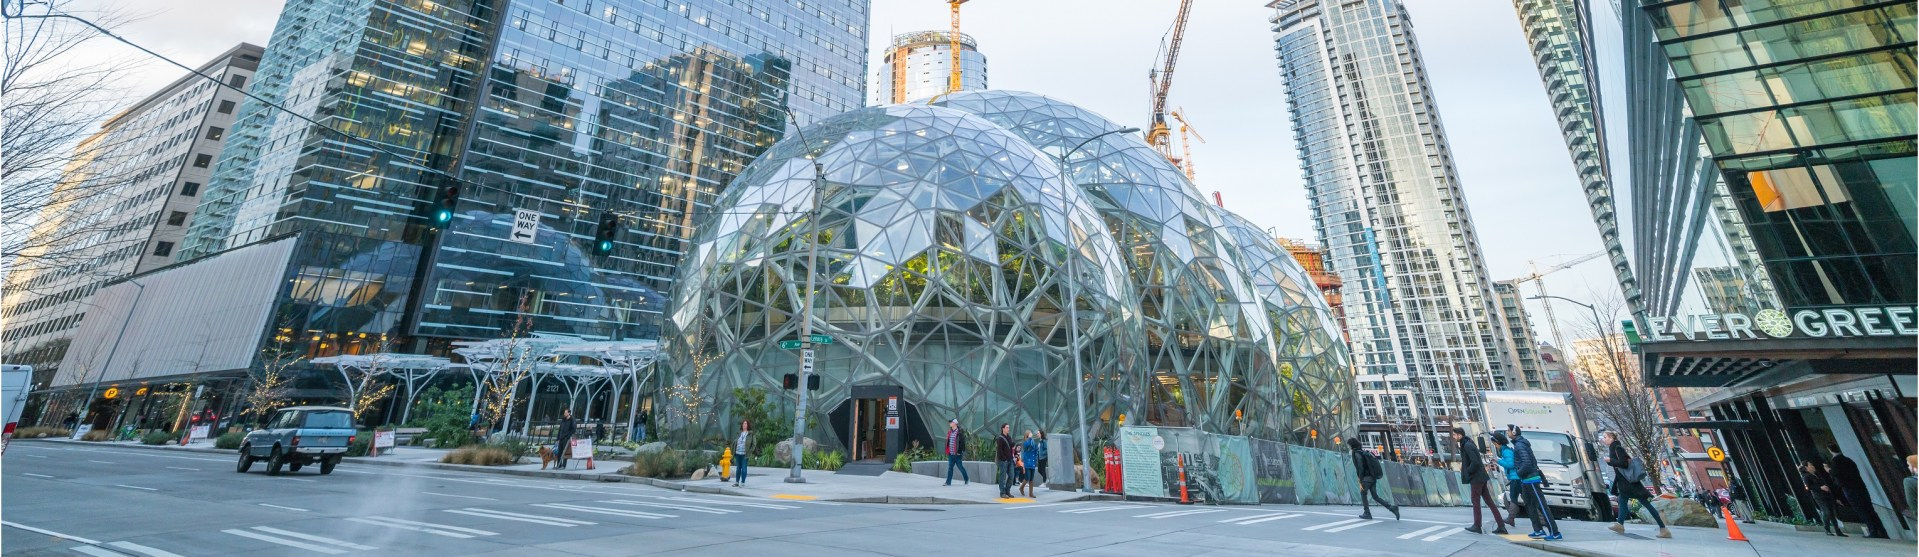 Amazon HQ2: How did we get here? What comes next?